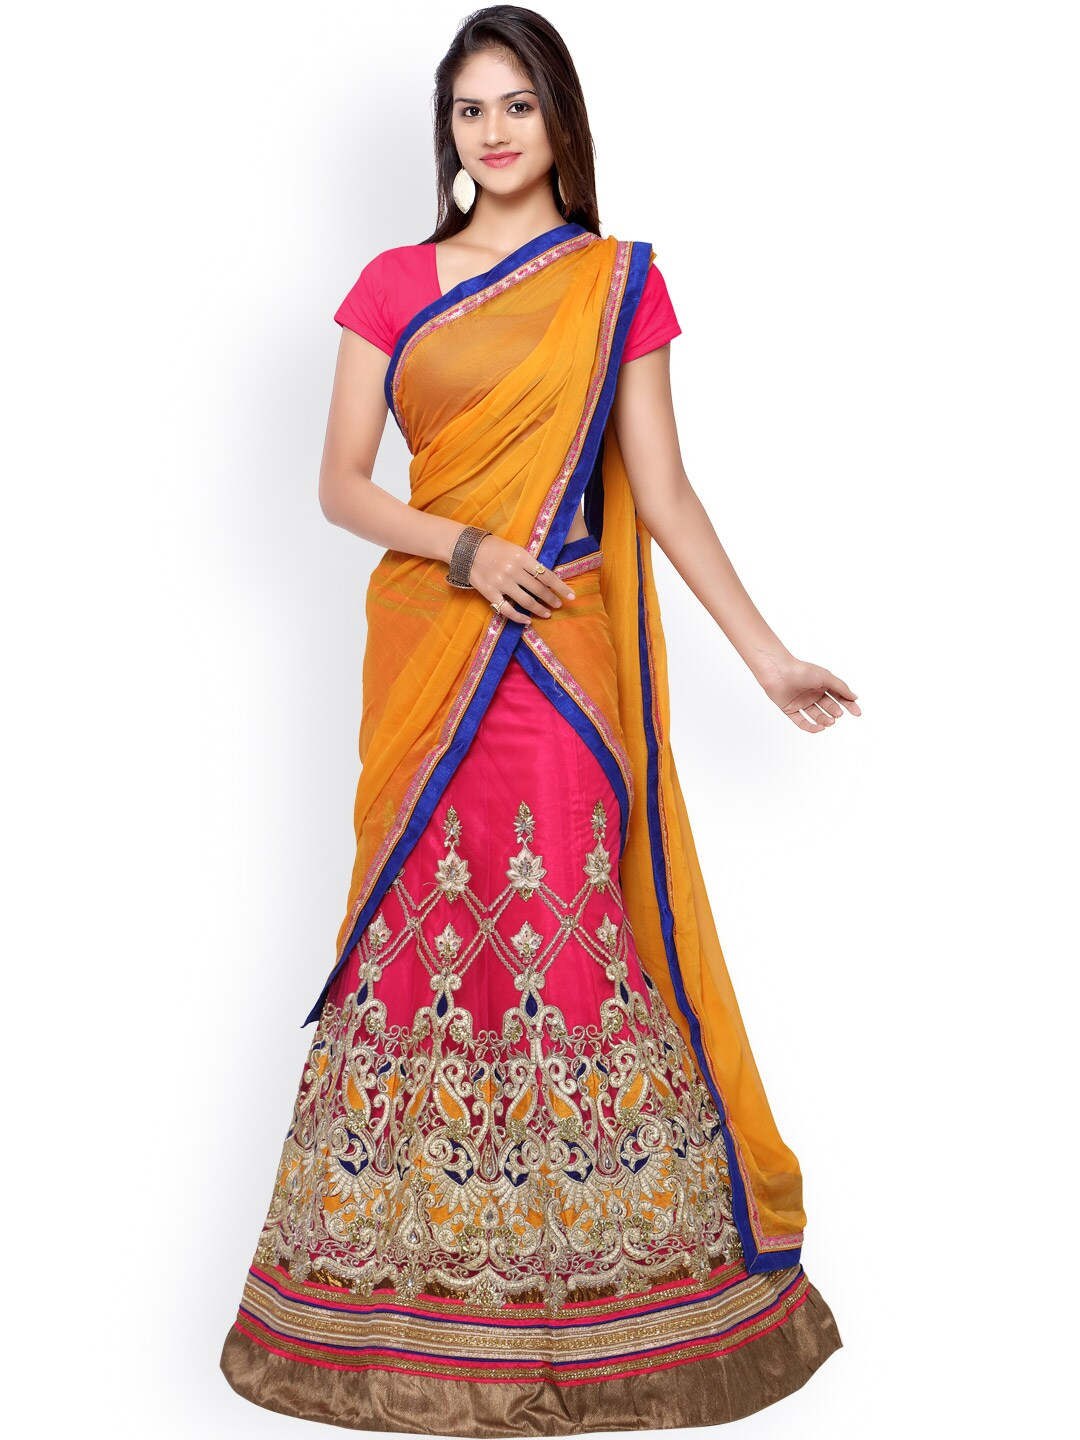 Touch Trends Pink & Orange Embroidered Net Semi-Stitched Lehenga Choli with Dupatta image